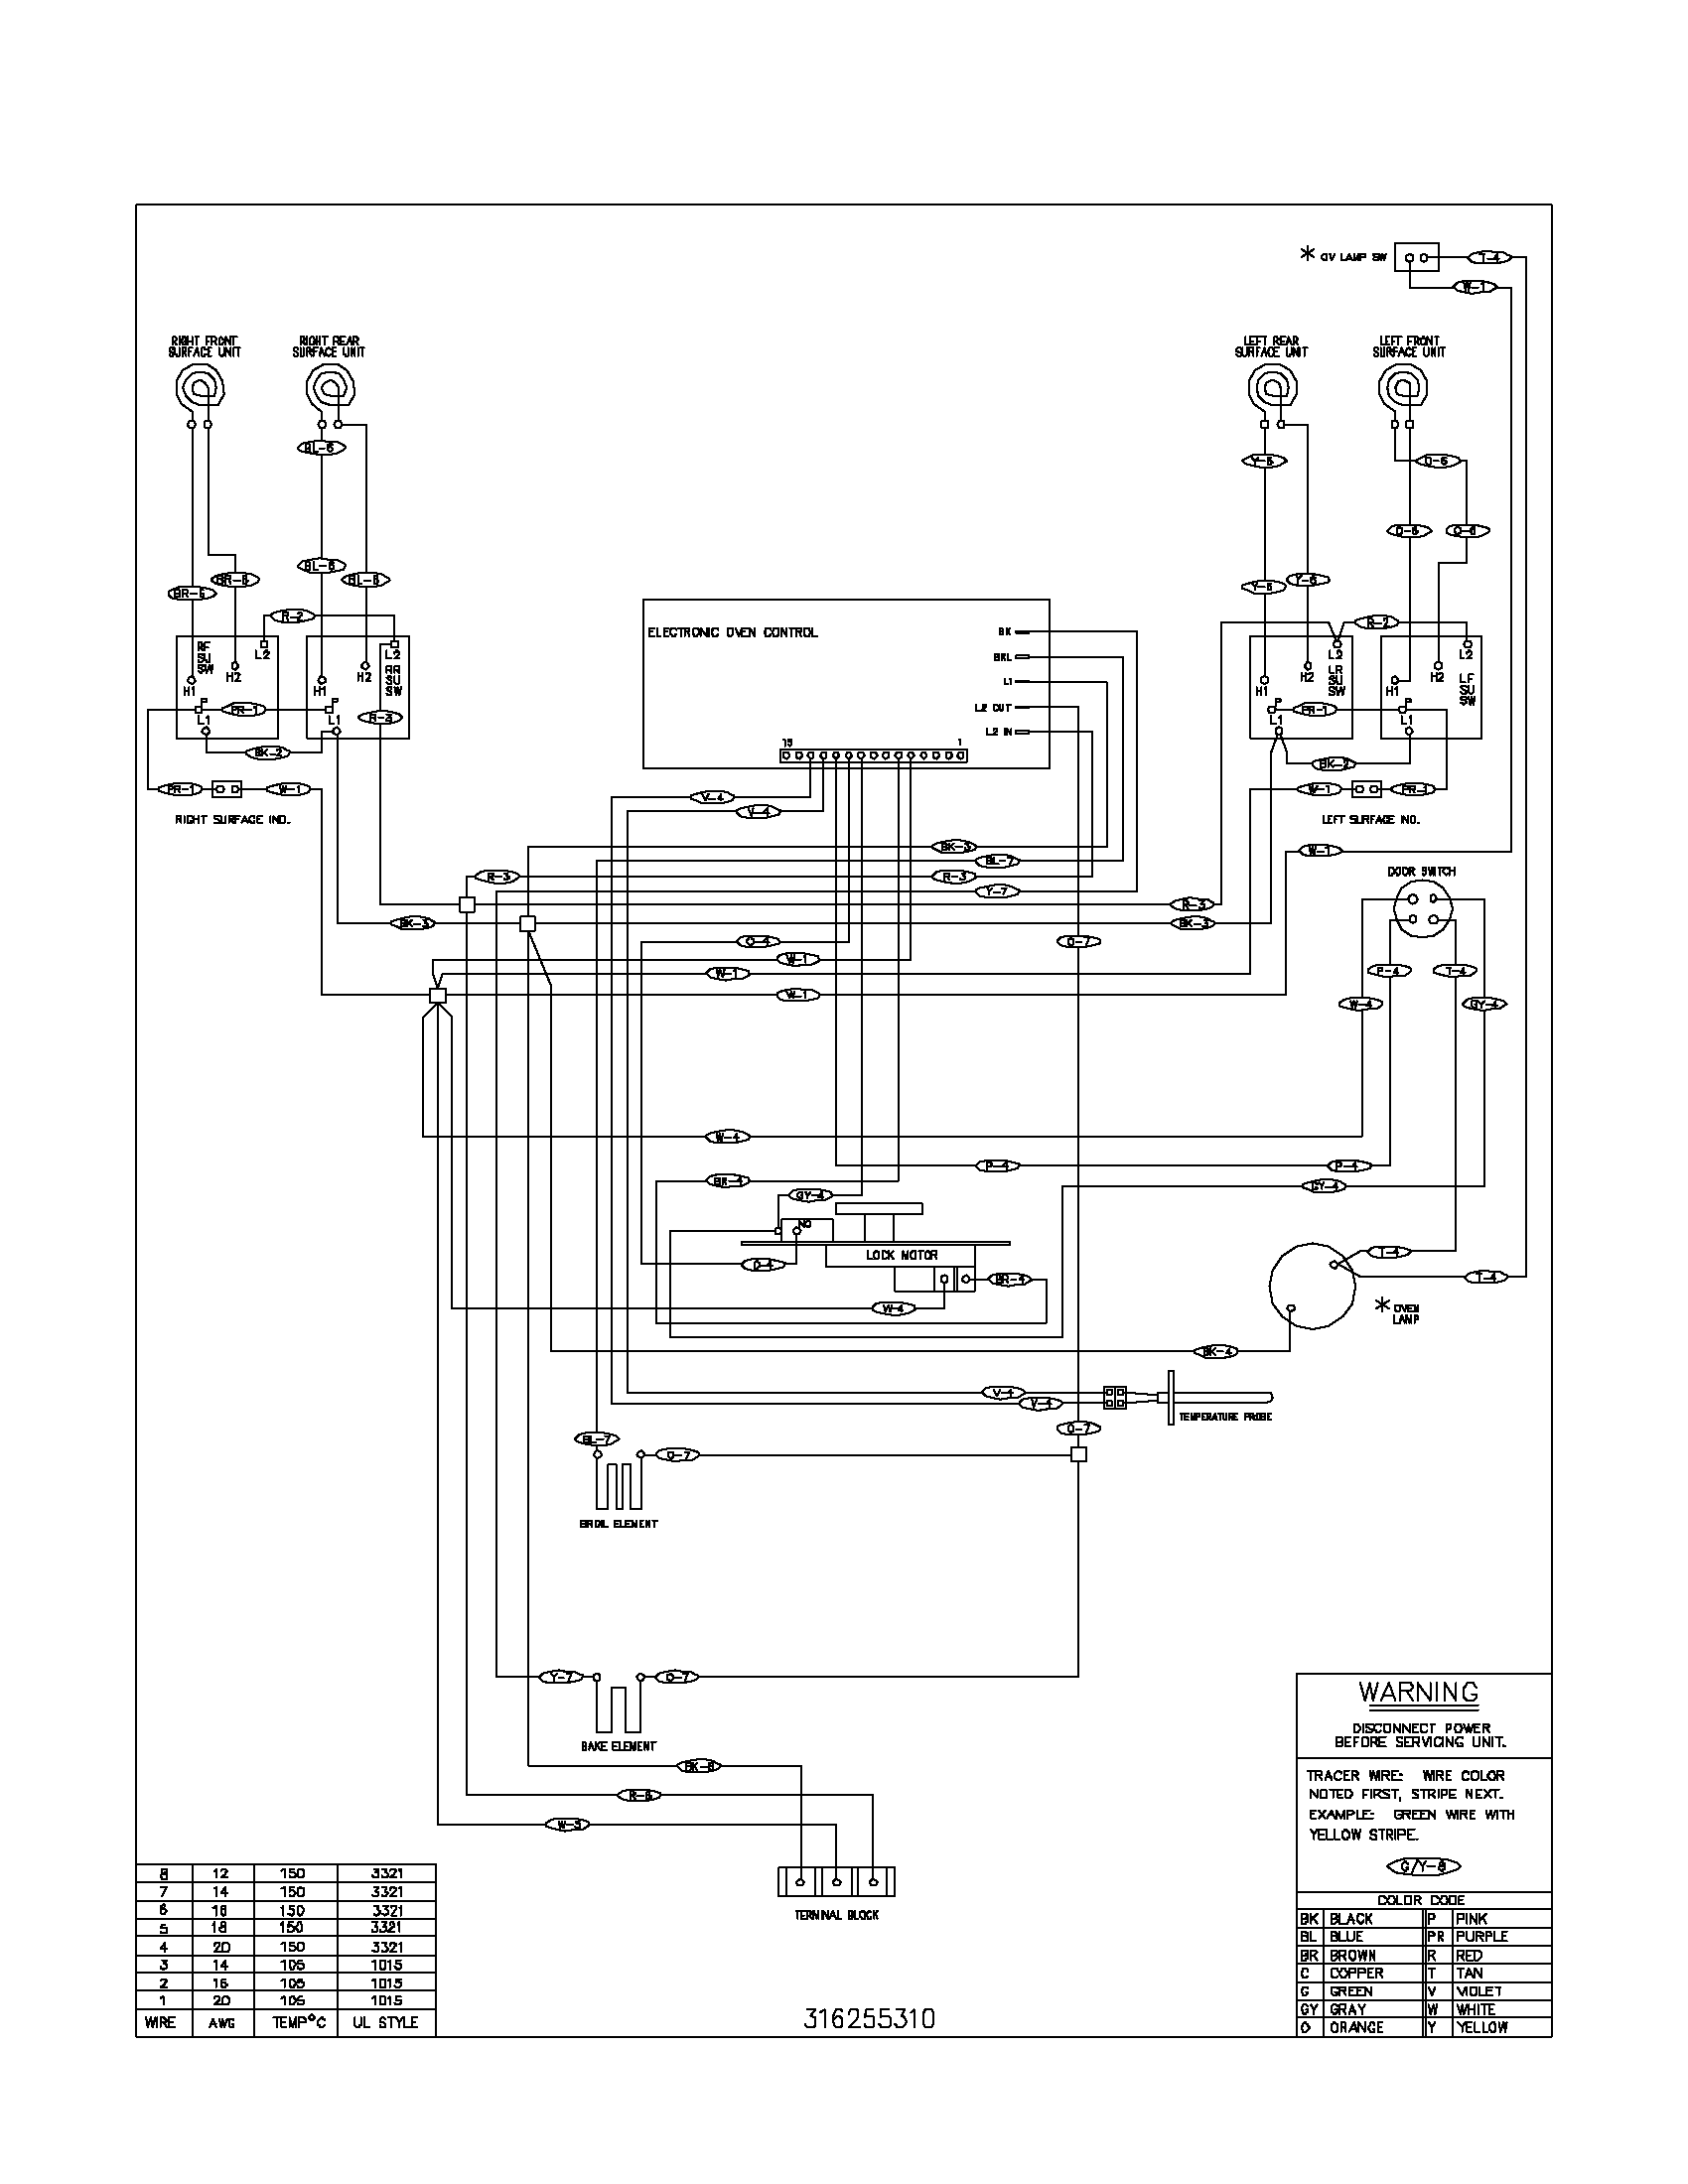 wiring diagram for frigidaire dryer the wiring diagram frigidaire fef352asf electric range timer stove clocks and wiring diagram